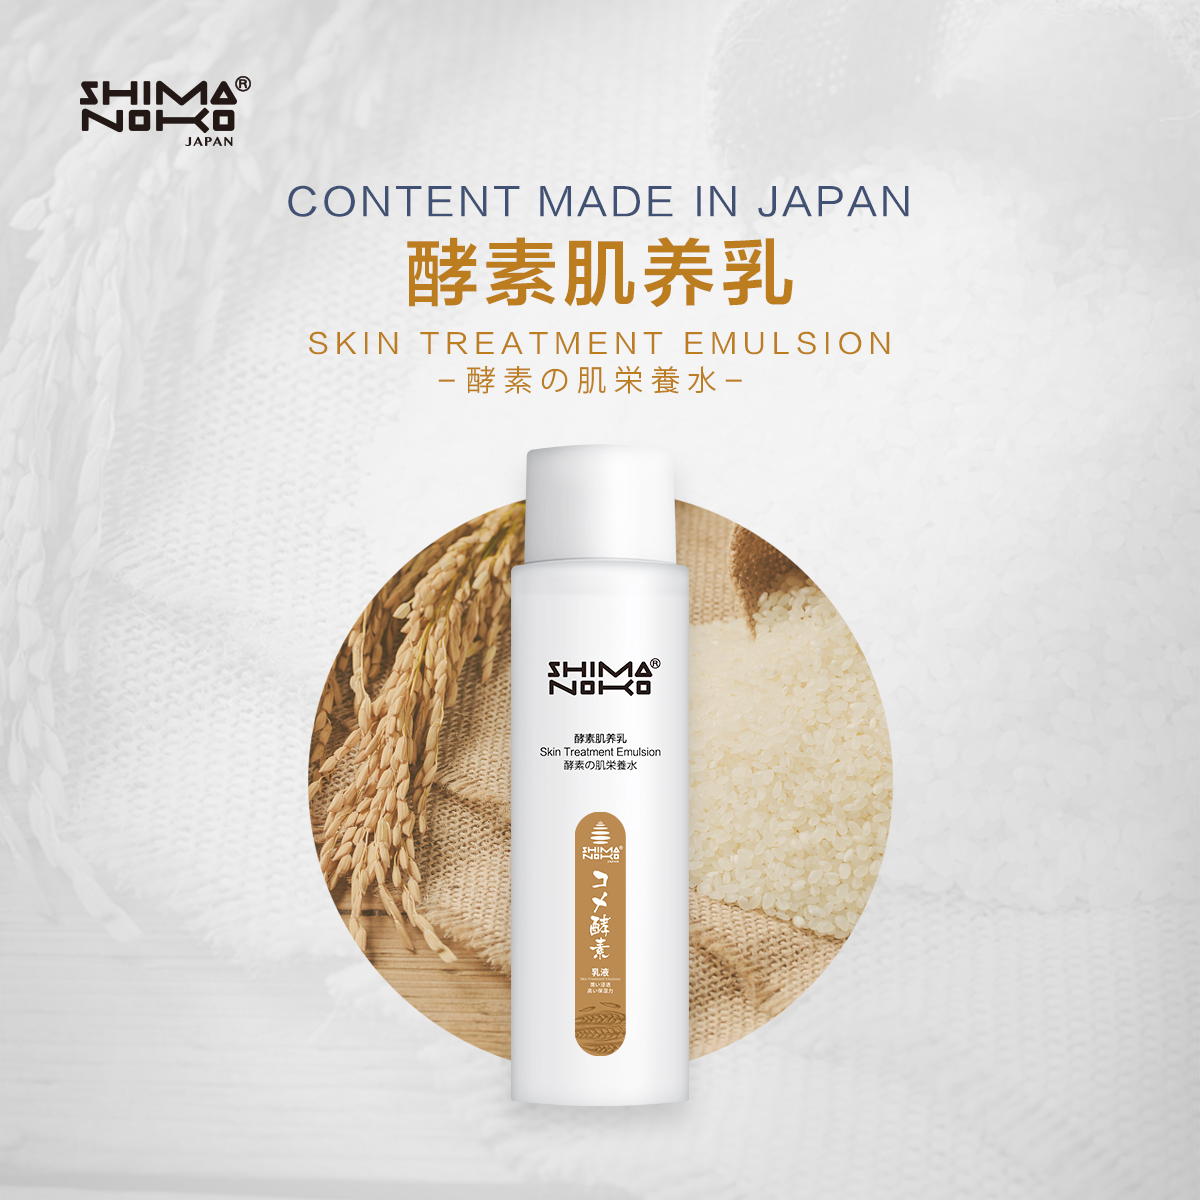 SHIMANOKO/ island face cream, cream, skin care, moisturizing, brightening, complexion, water saving, moisturizing, moisturizing, and moisturizing.